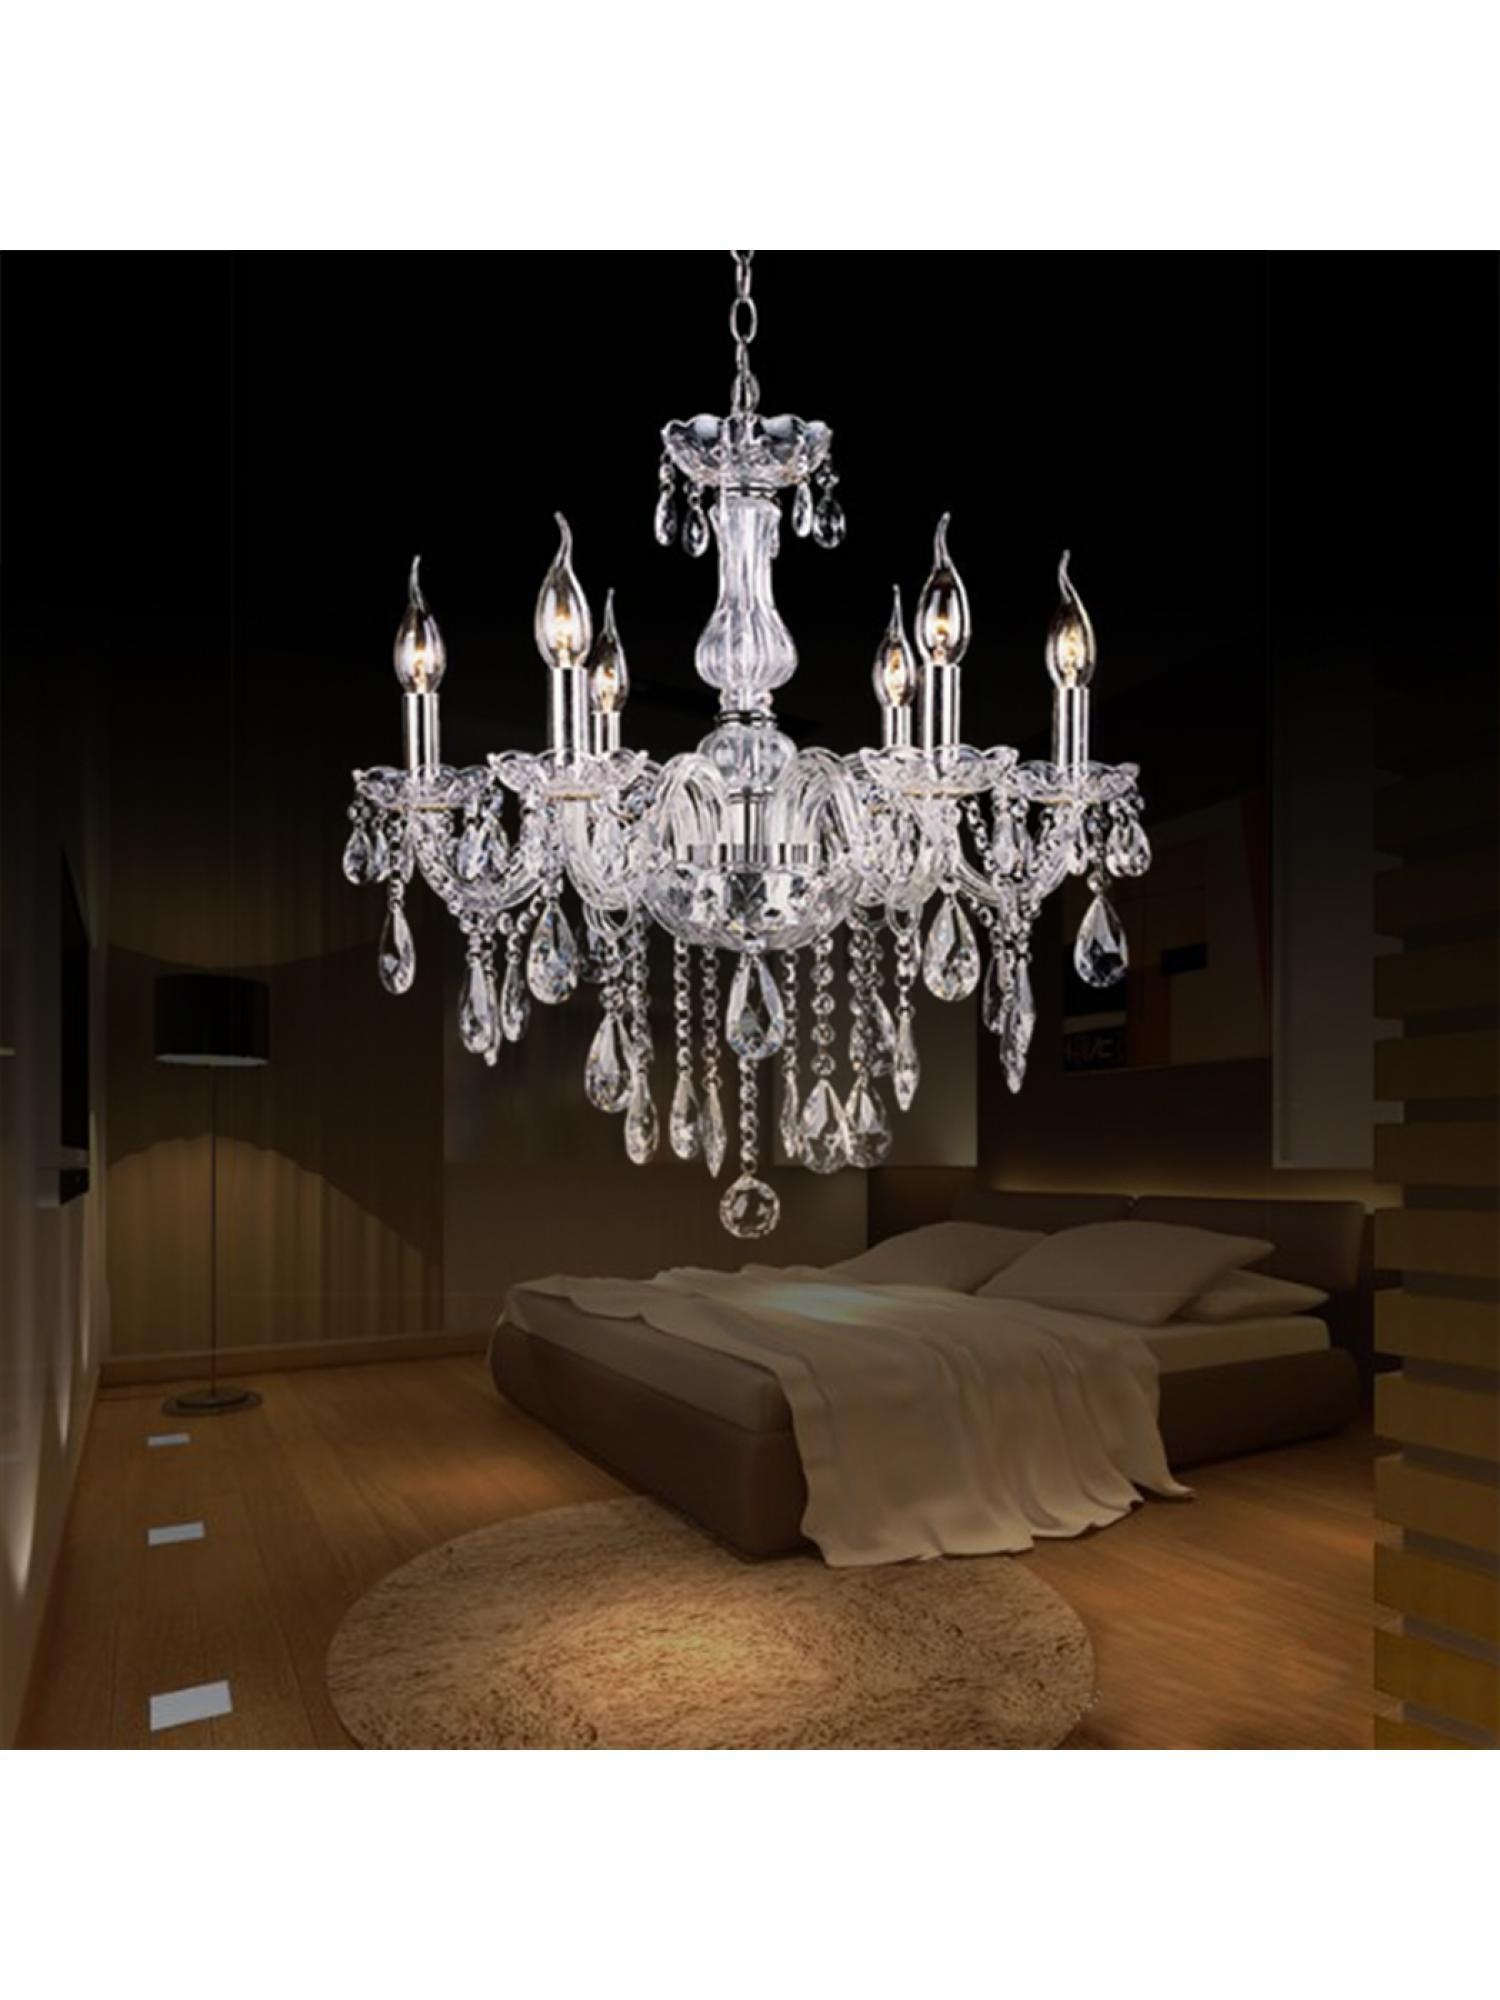 Crystal Lamp Fixture Pendant 6 Lights Ceiling Chain Candle Chandelier smt by Unbrand